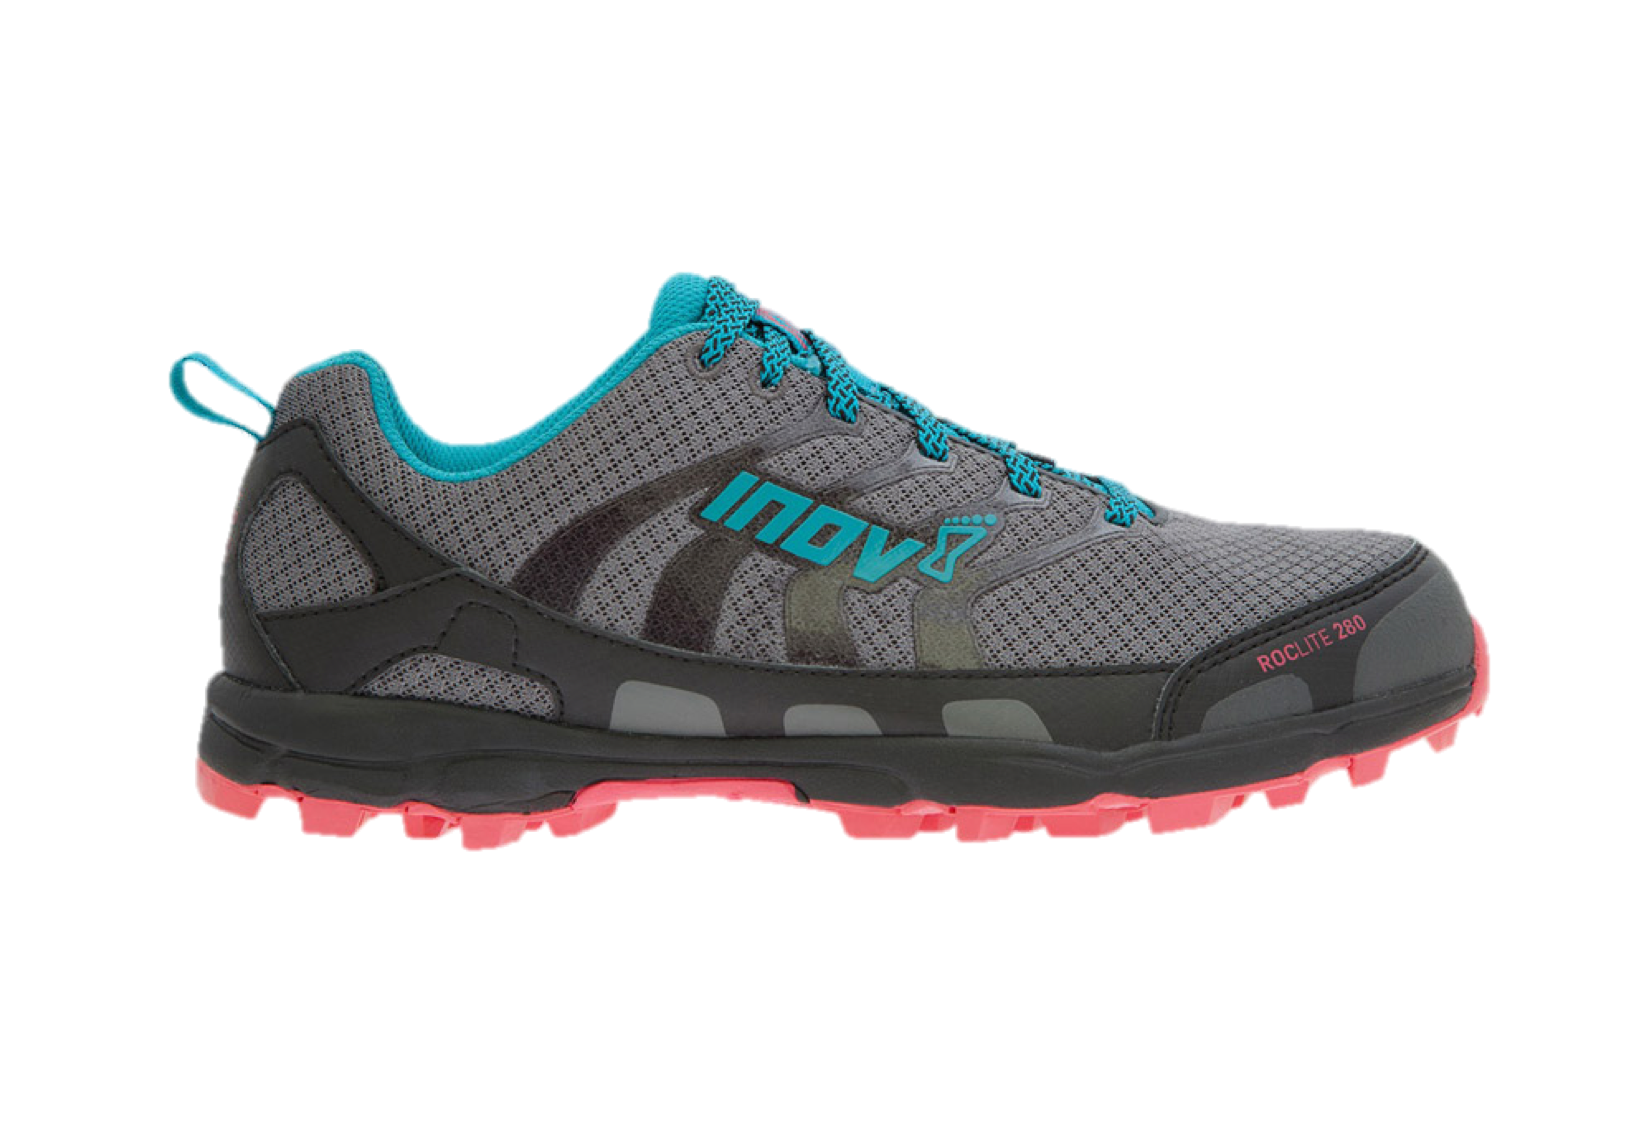 hiking shoes - Inov-8 RockliteRead why→